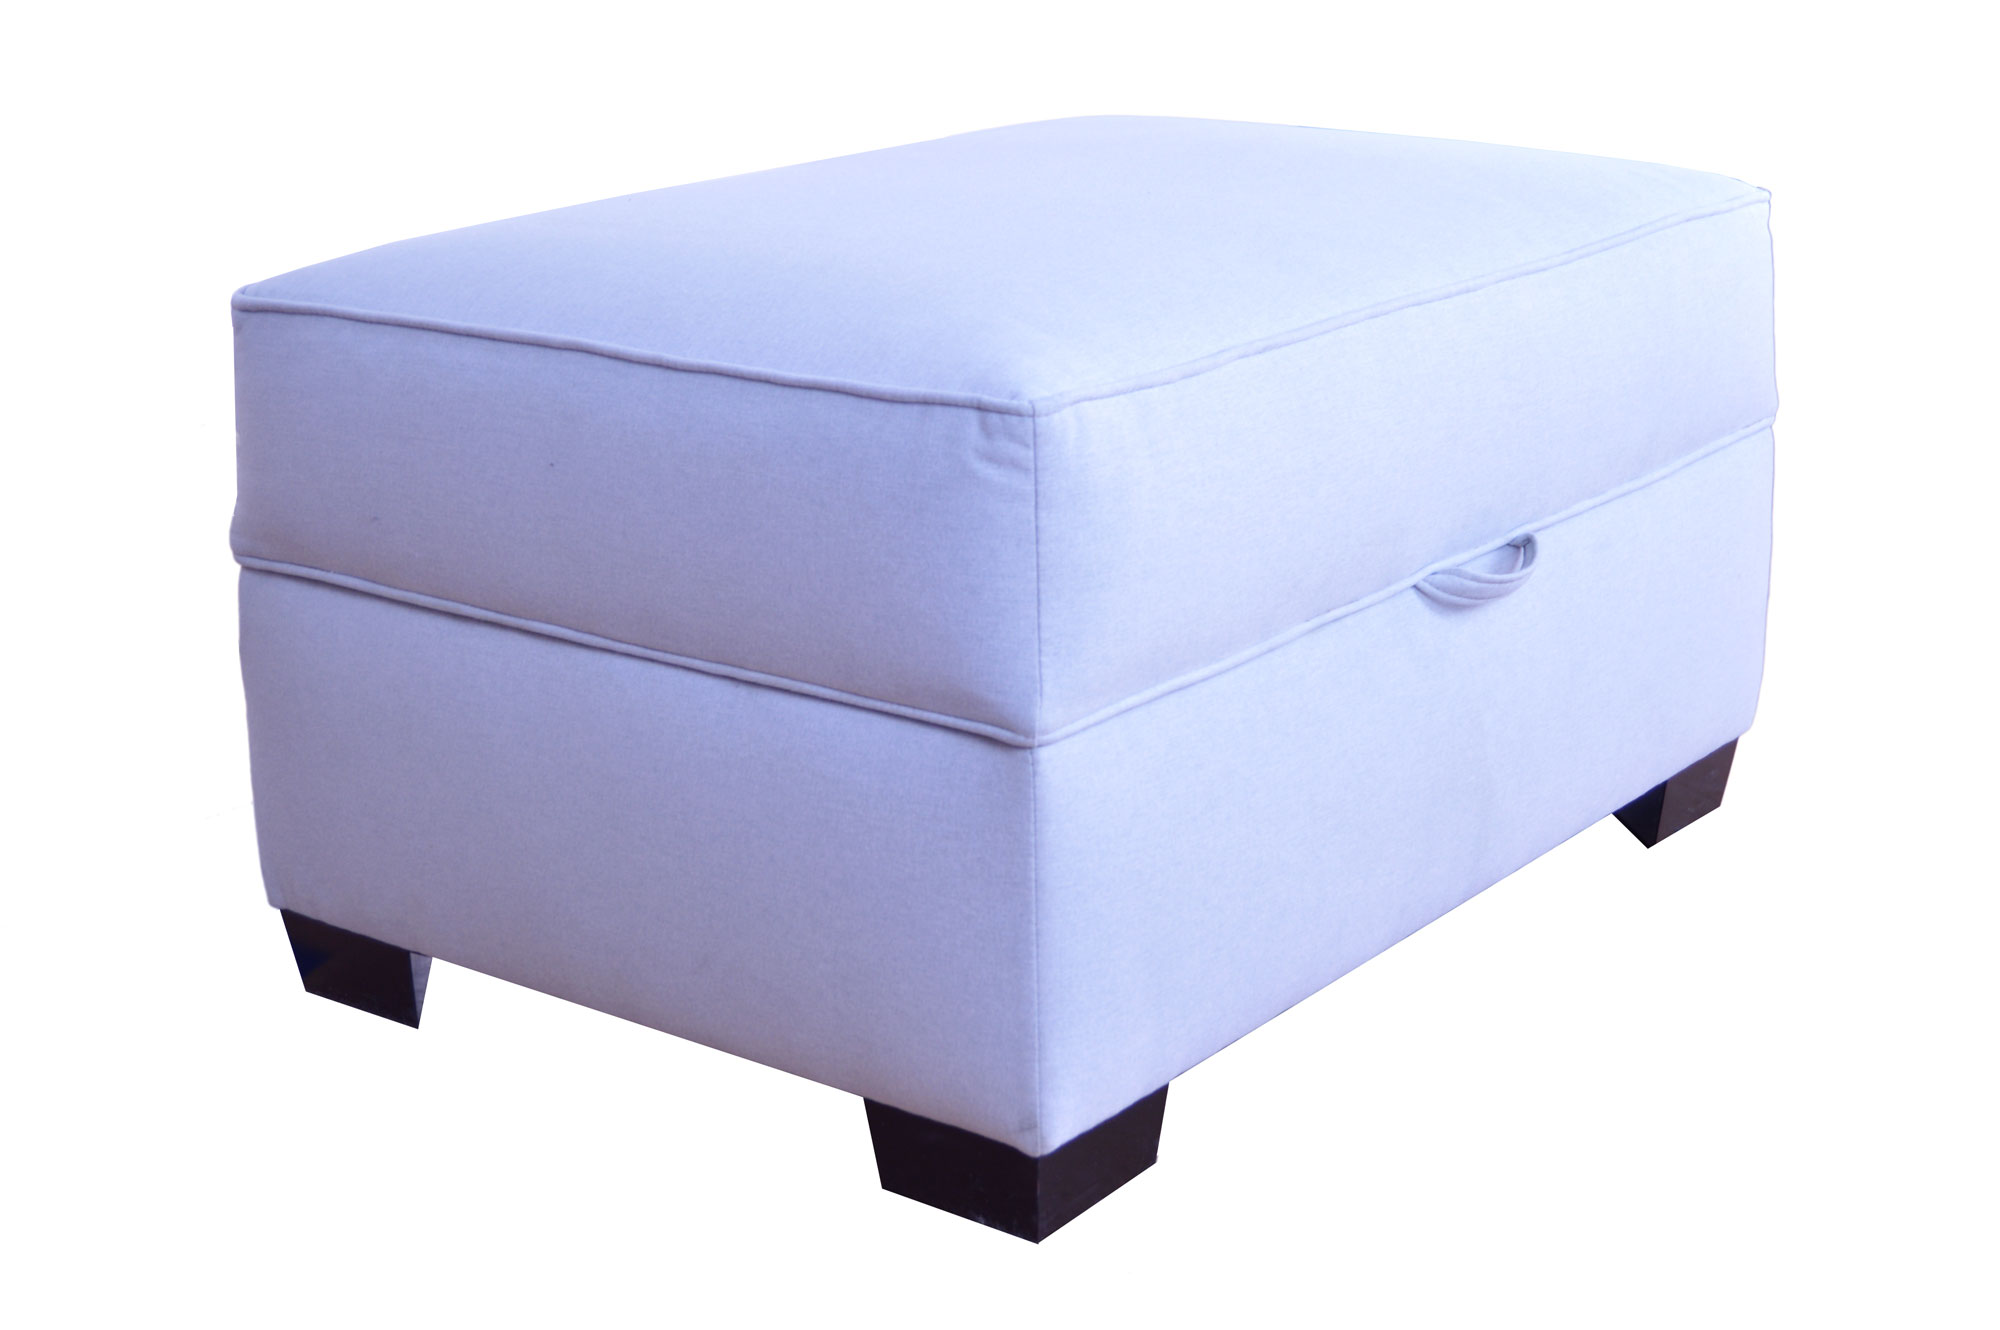 Sofas 4 Less Antioch Storage Ottoman - Custom Sofas 4 Less